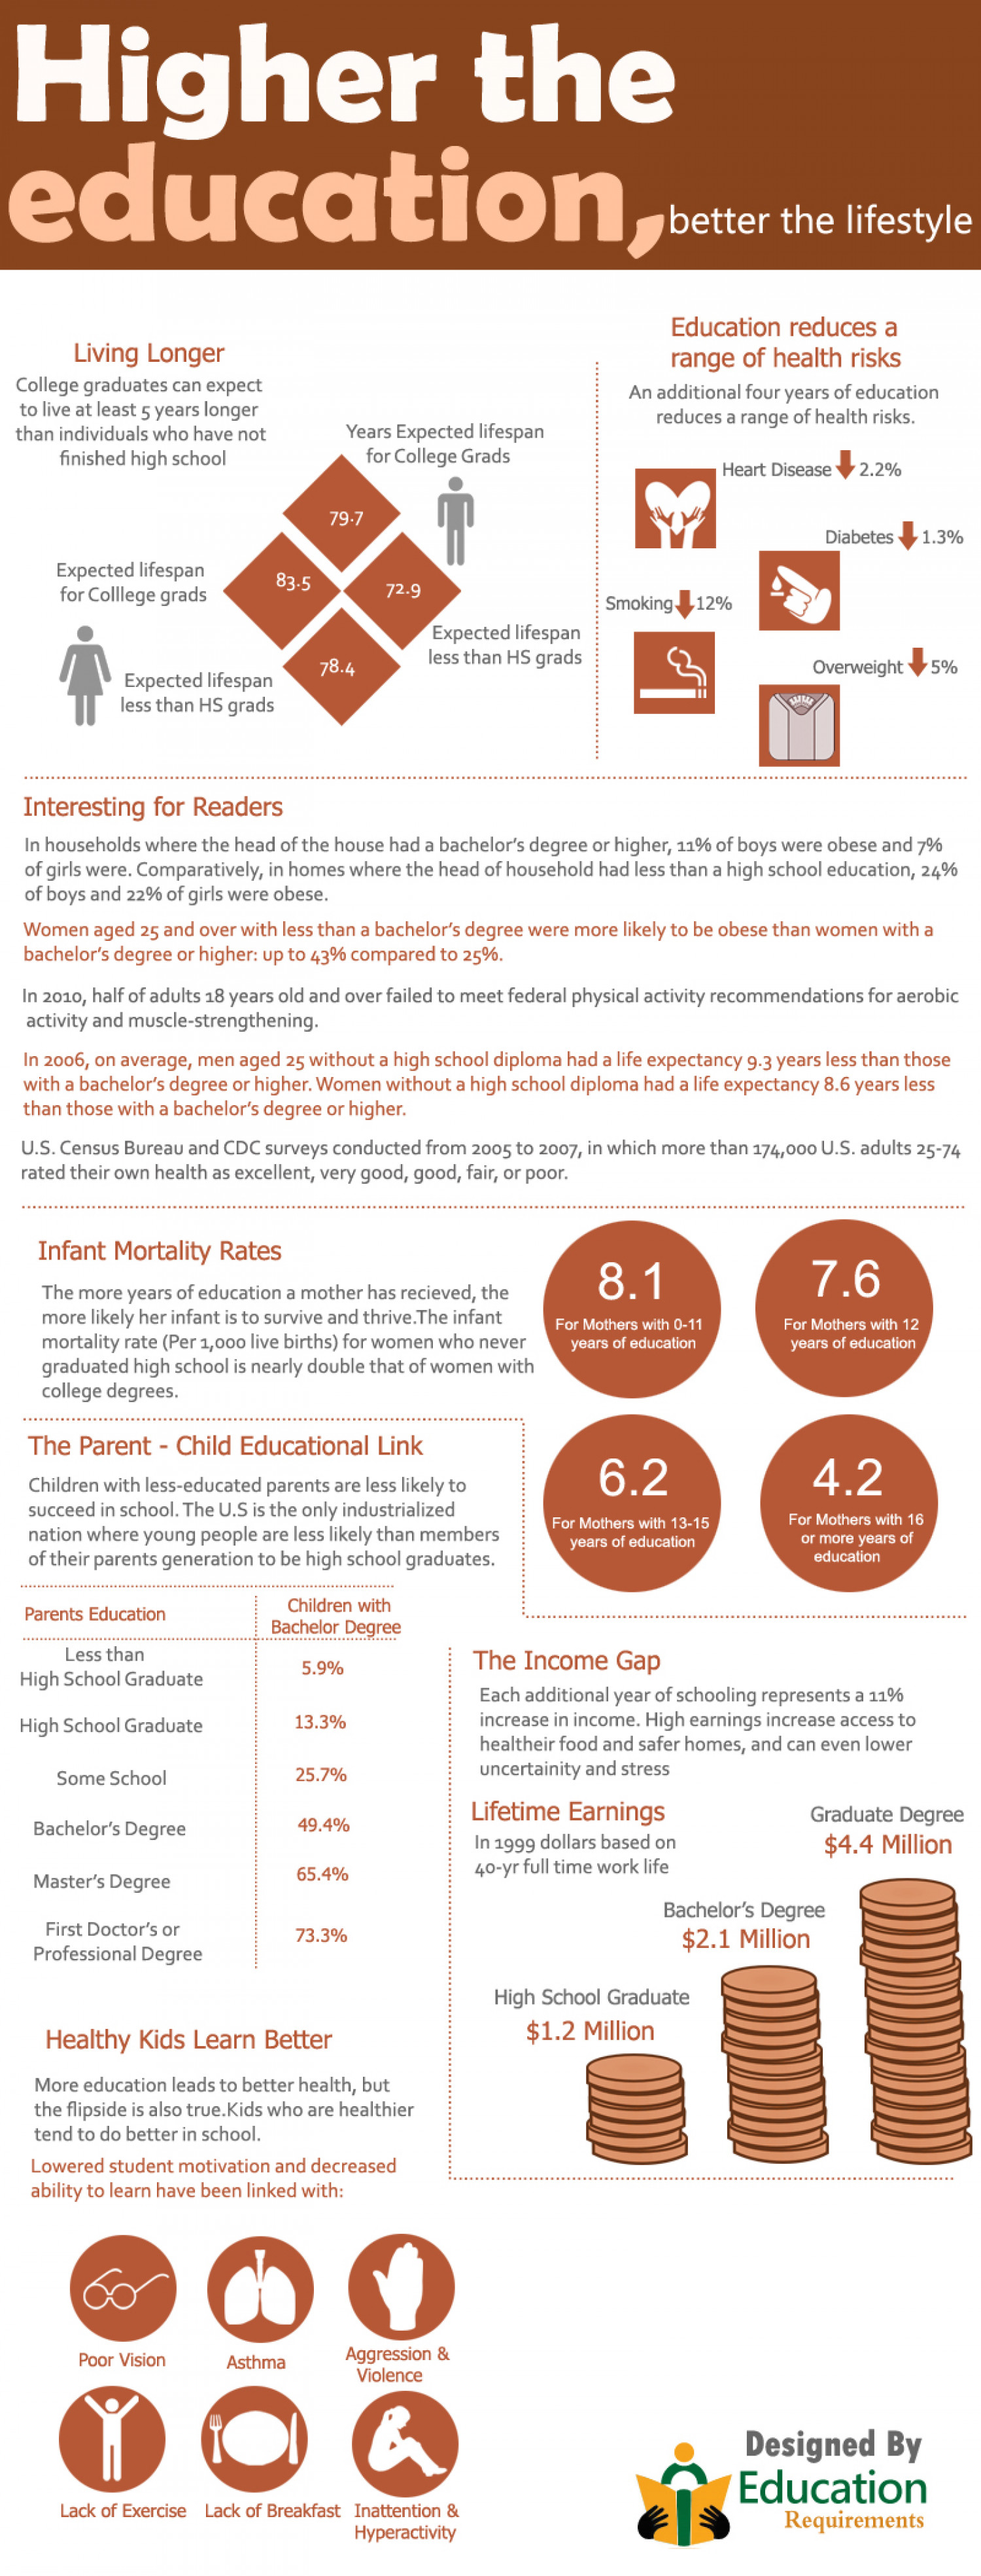 Higher the education, better the lifestyle (Infographic) Infographic